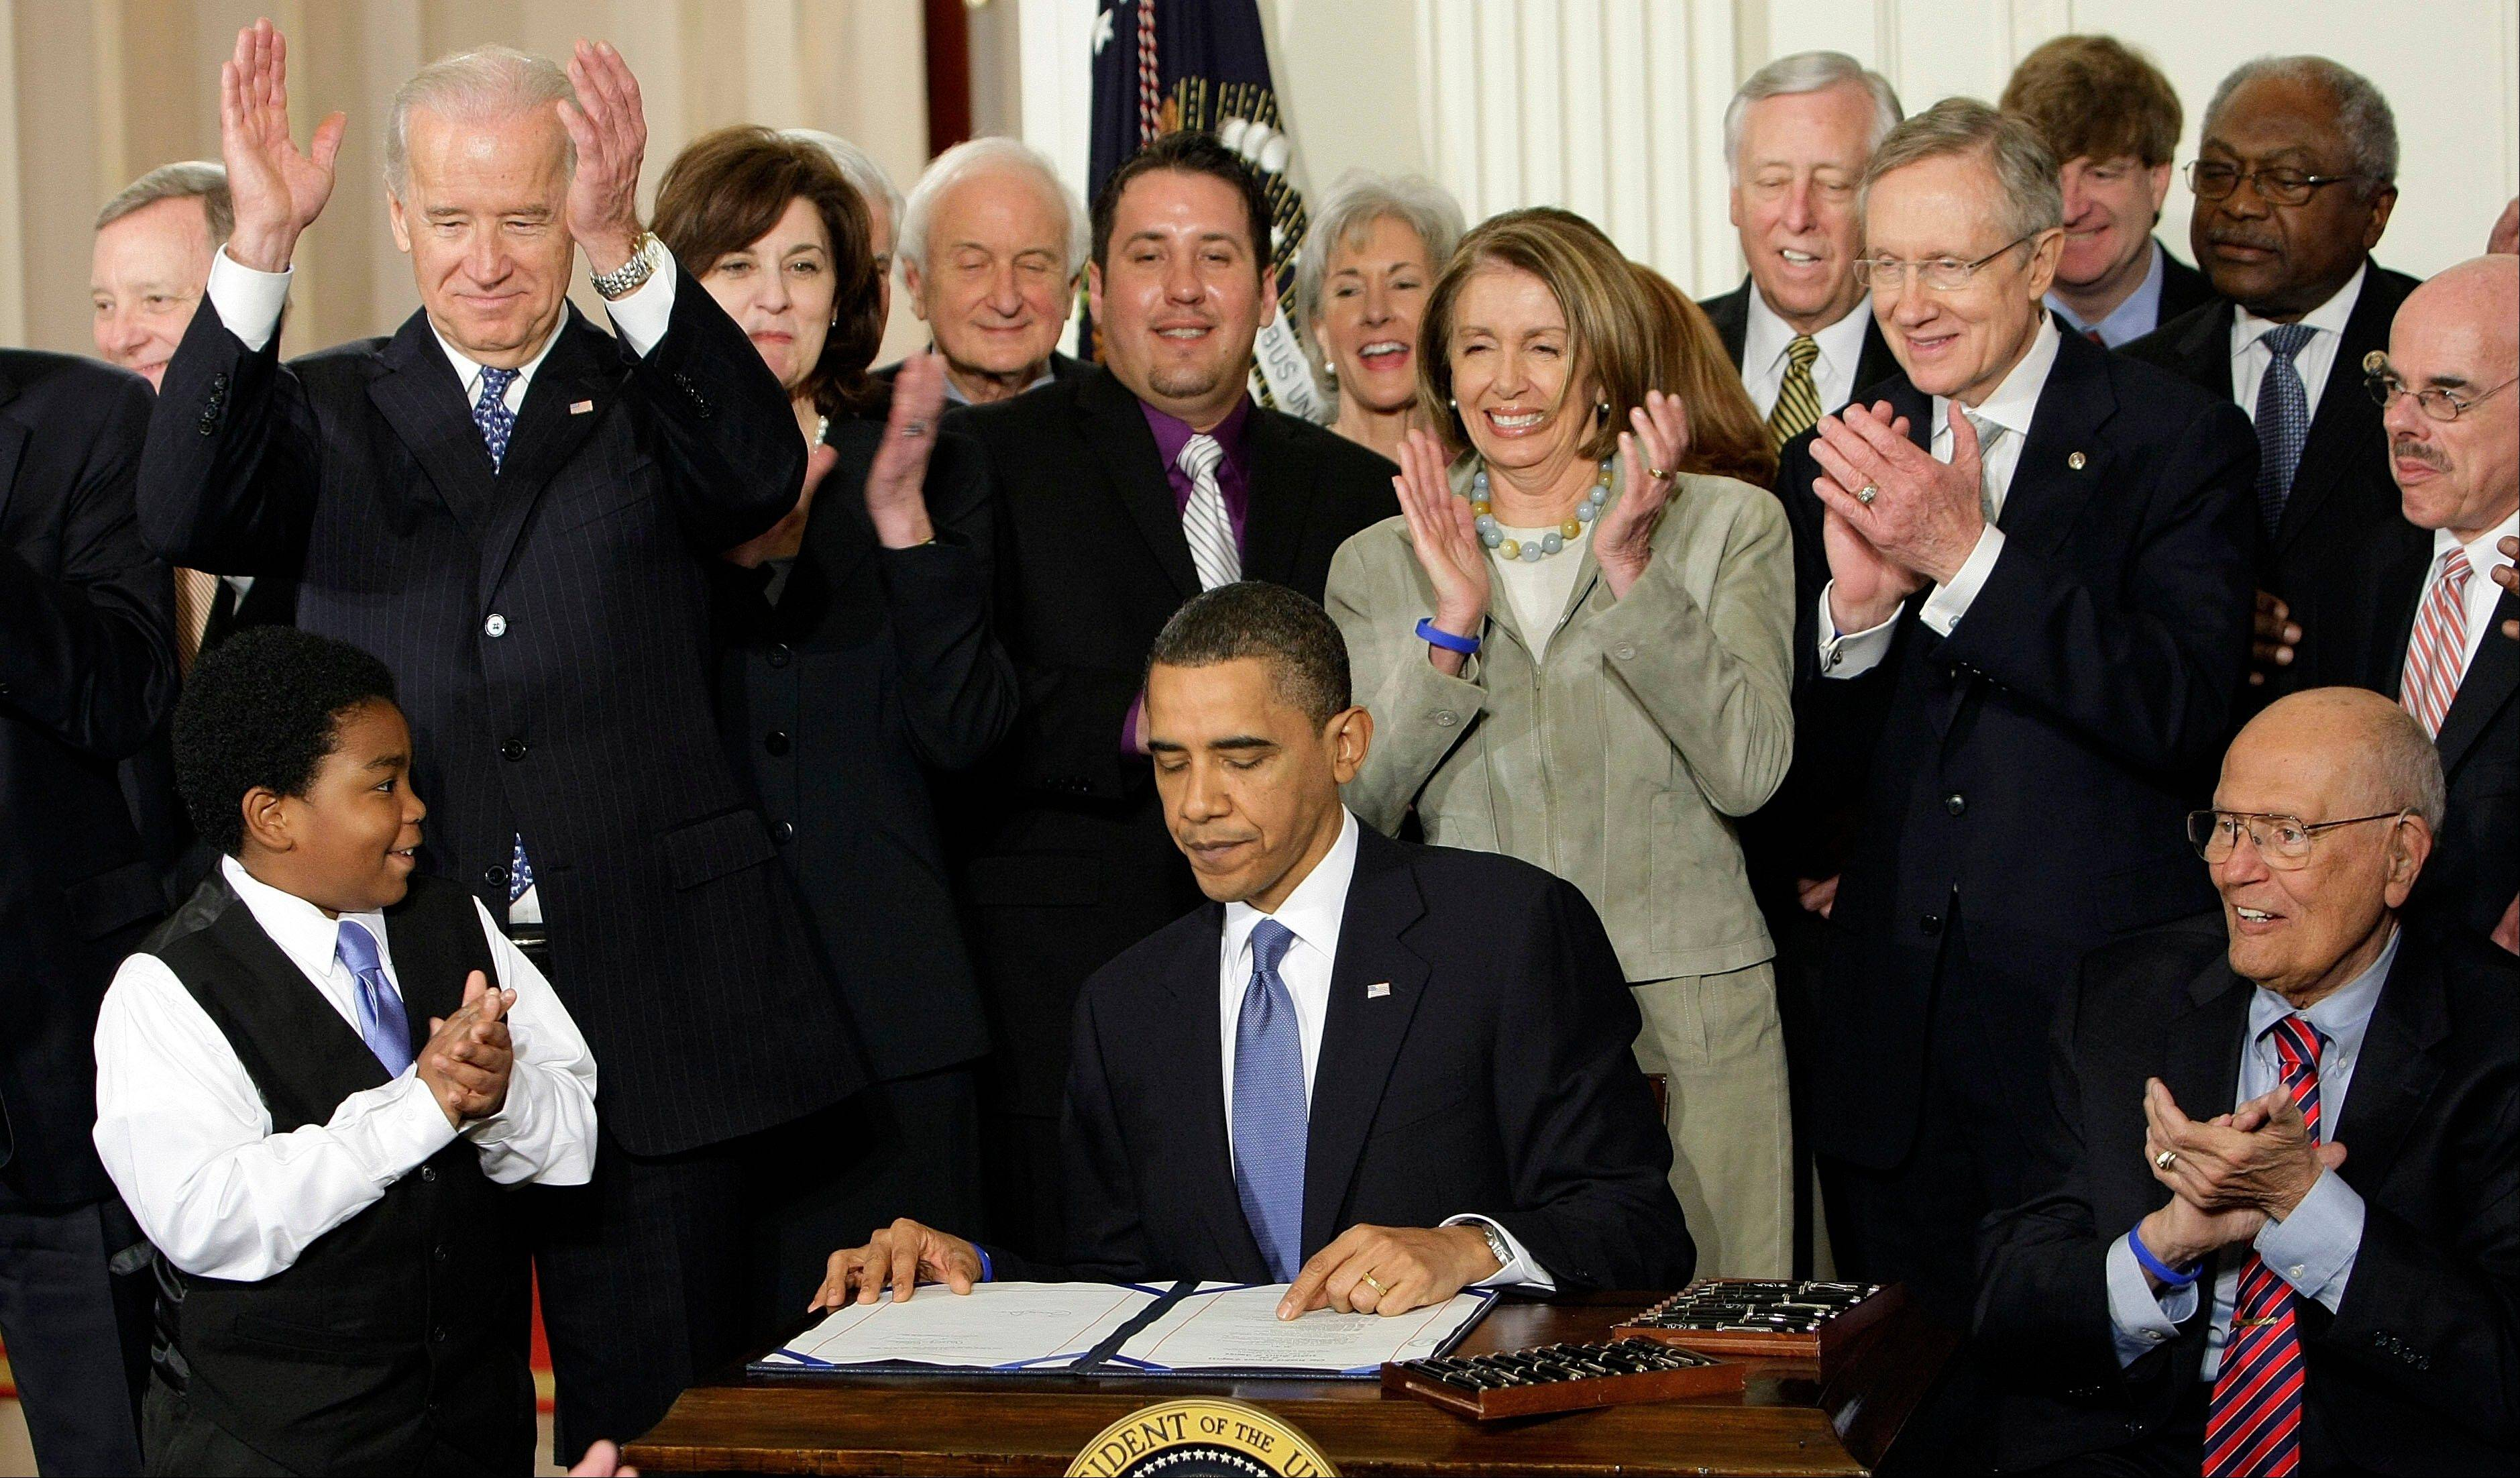 Participants applaud in the East Room of the White House in Washington, Tuesday, March 23, 2010, as President Barack Obama signs the health care bill. Americans may not be all that crazy about President Barack Obama�s health care law, but a new poll shows they don�t see it going away.